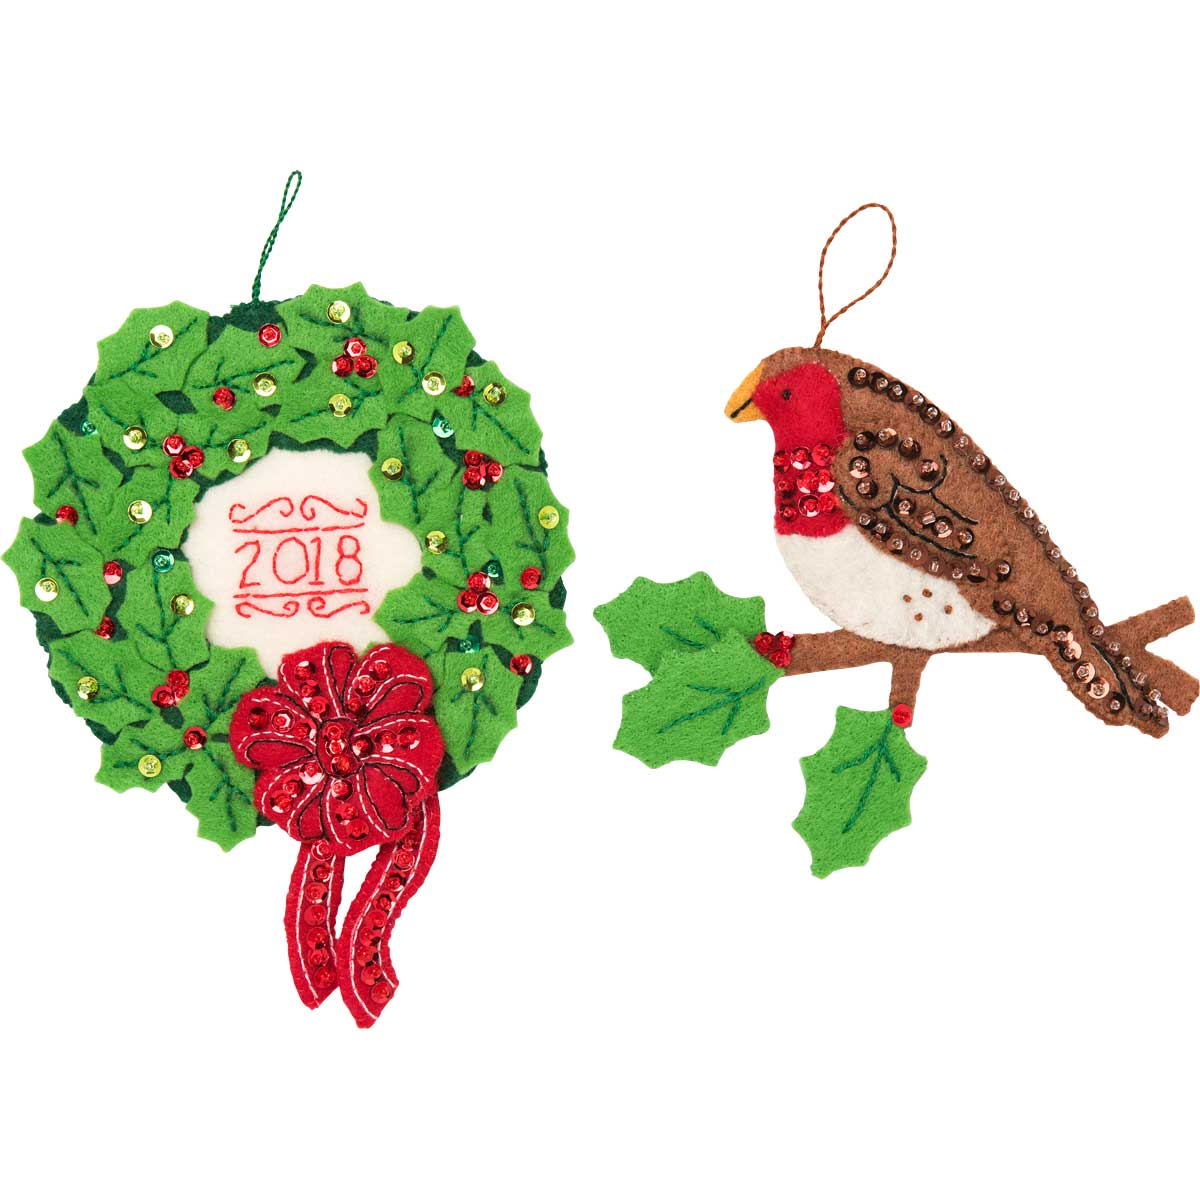 Bucilla Seasonal Felt Tree Trimmer Kit - Hallmark - 'Tis the Season